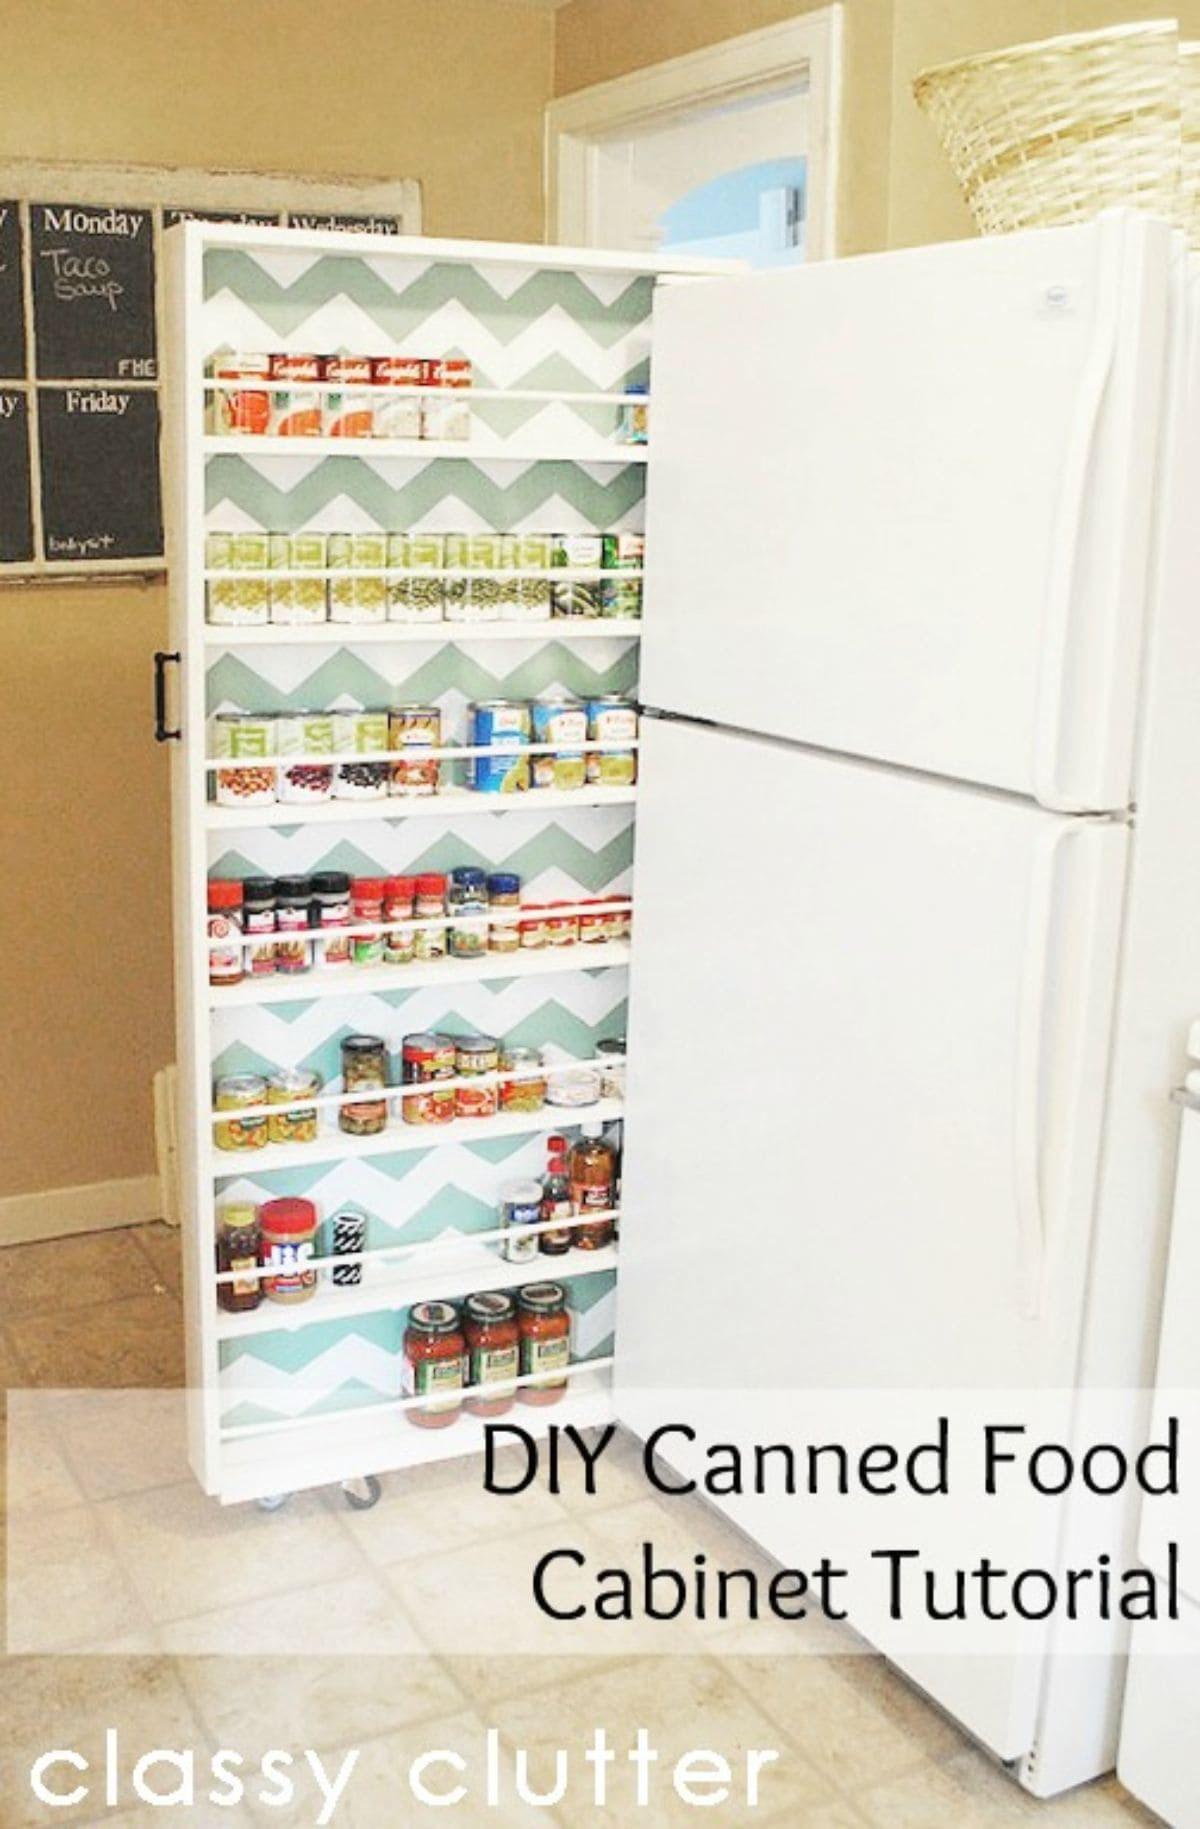 A pull-out shallow cabinet with many shelves containing spices and condiments.